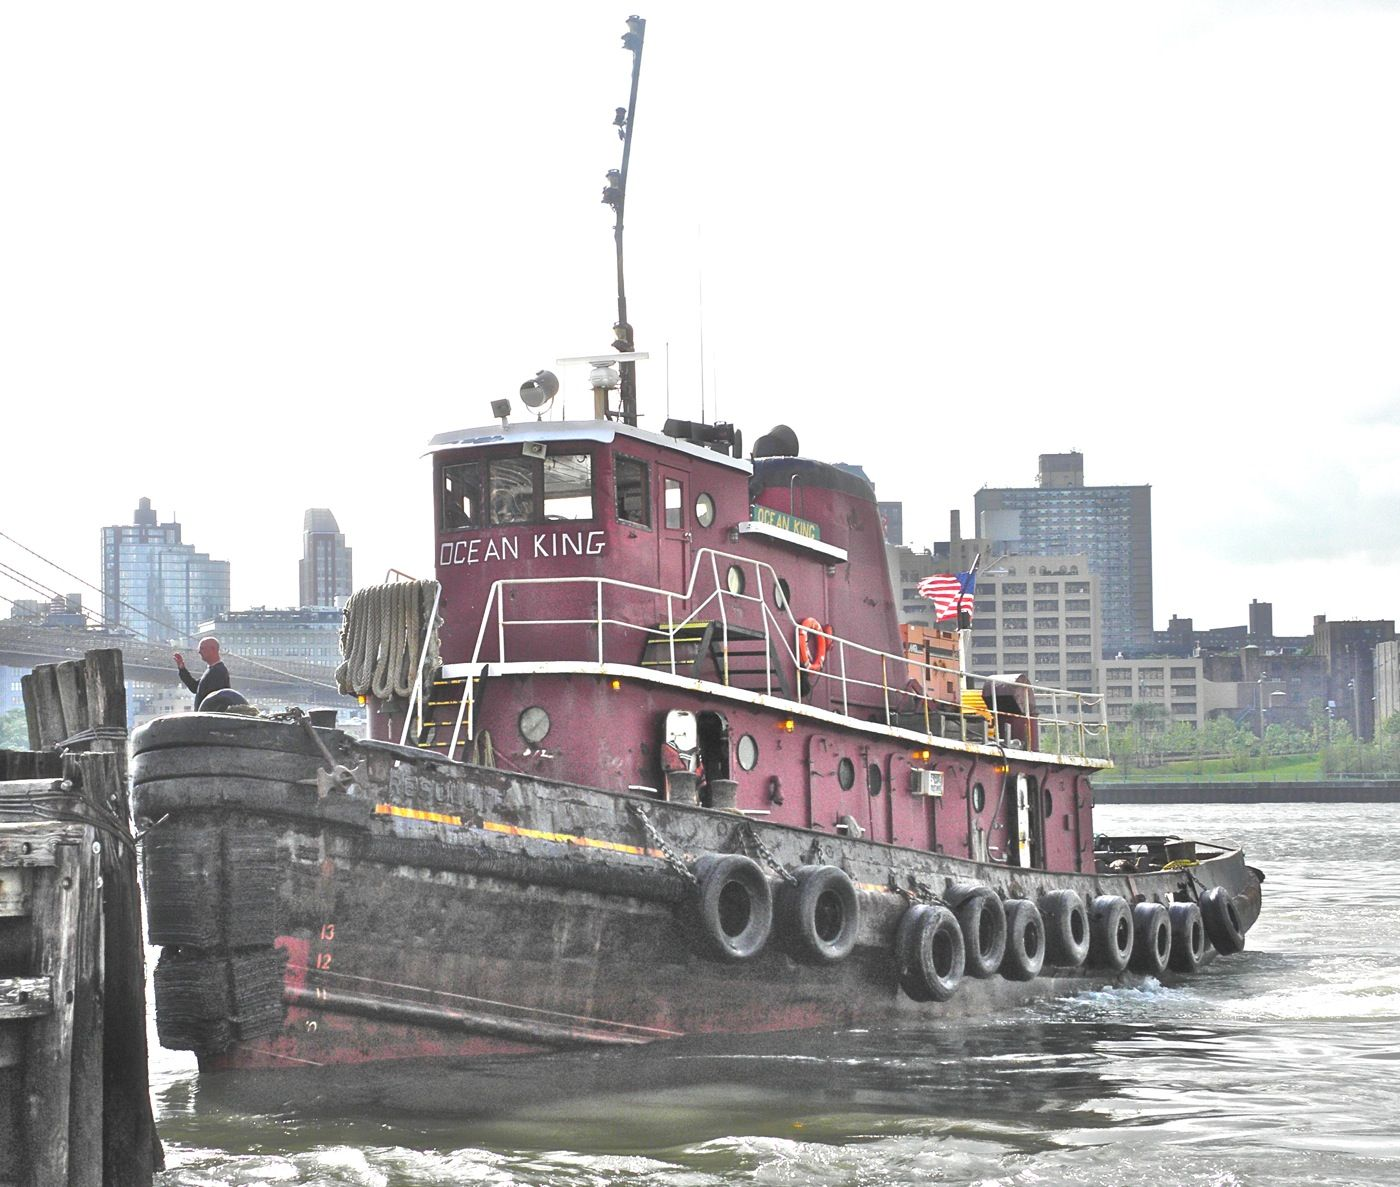 Great Looking Old Tug Tugboats Pinterest Tug Boats Boat And